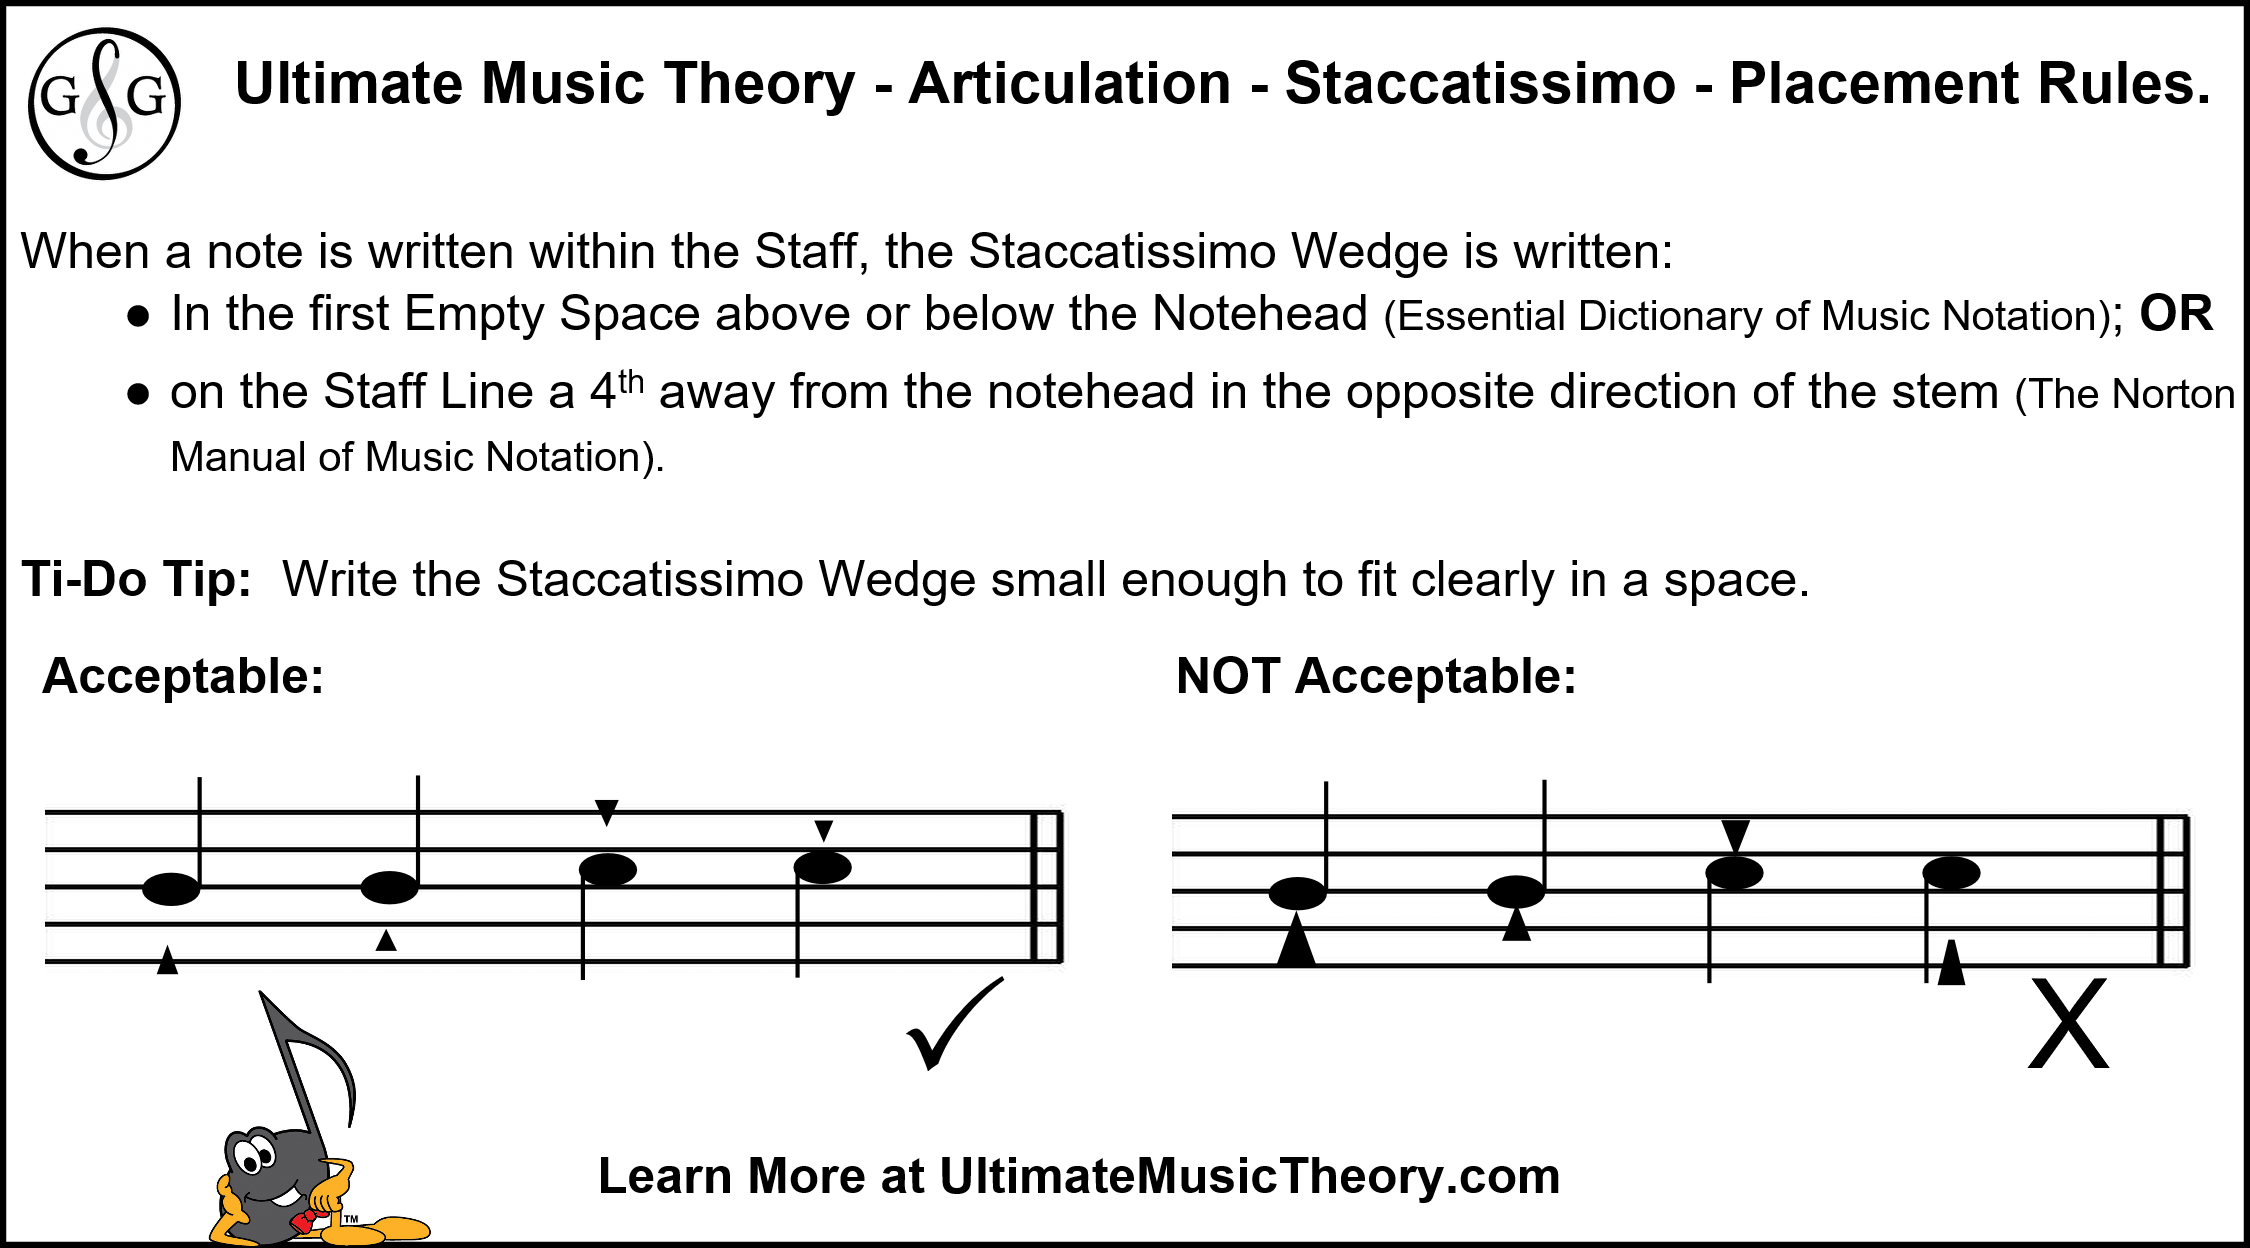 UMT Staccatissimo Acceptable Placement